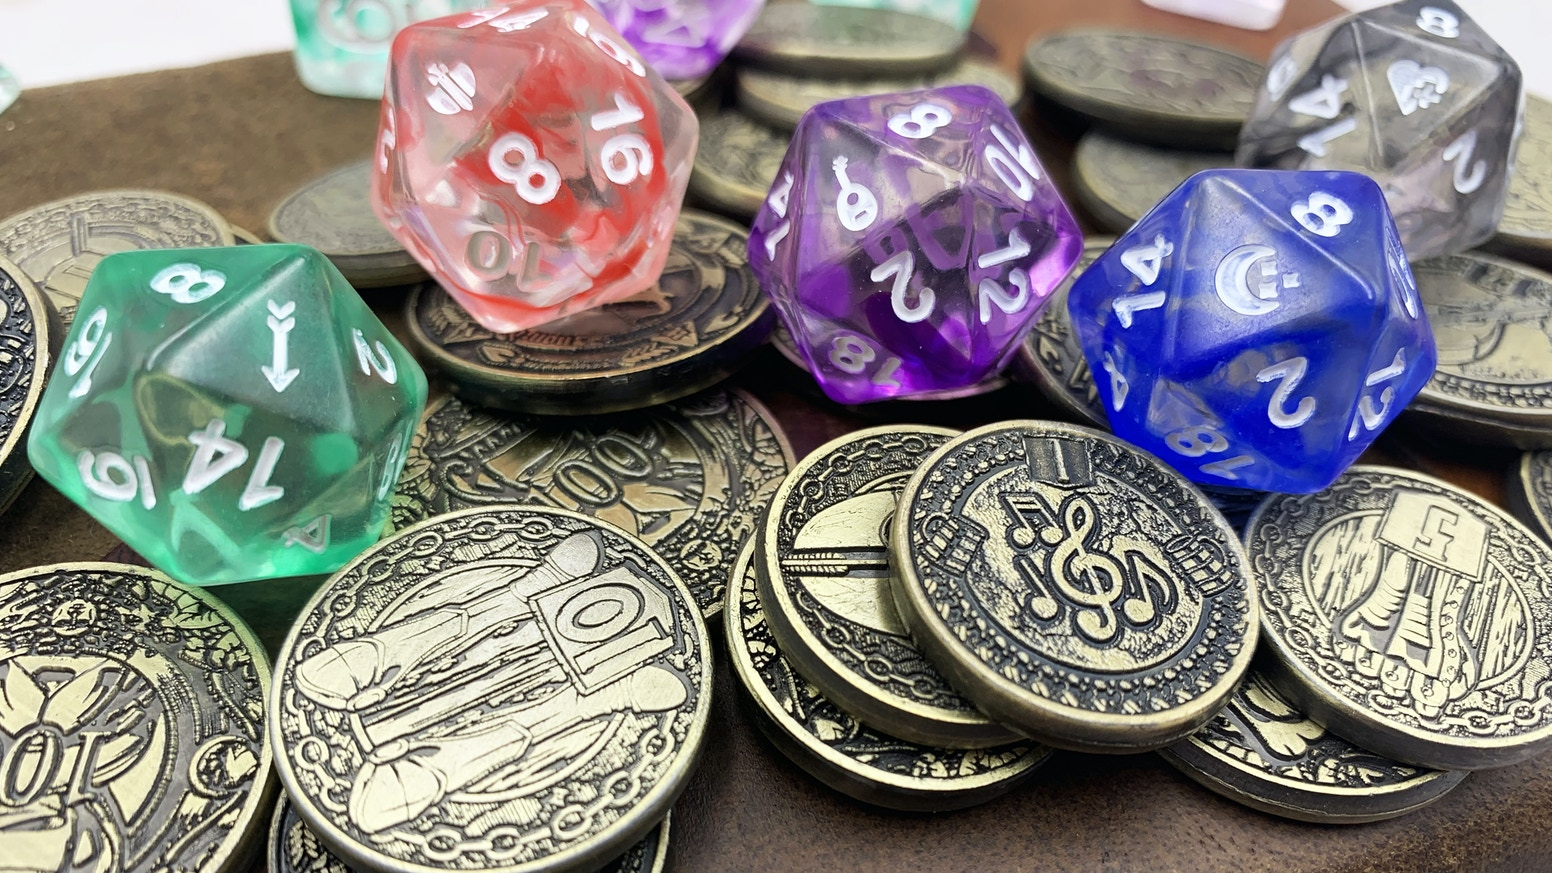 Norse Foundry Kickstarter : Our top discount is 30% off.